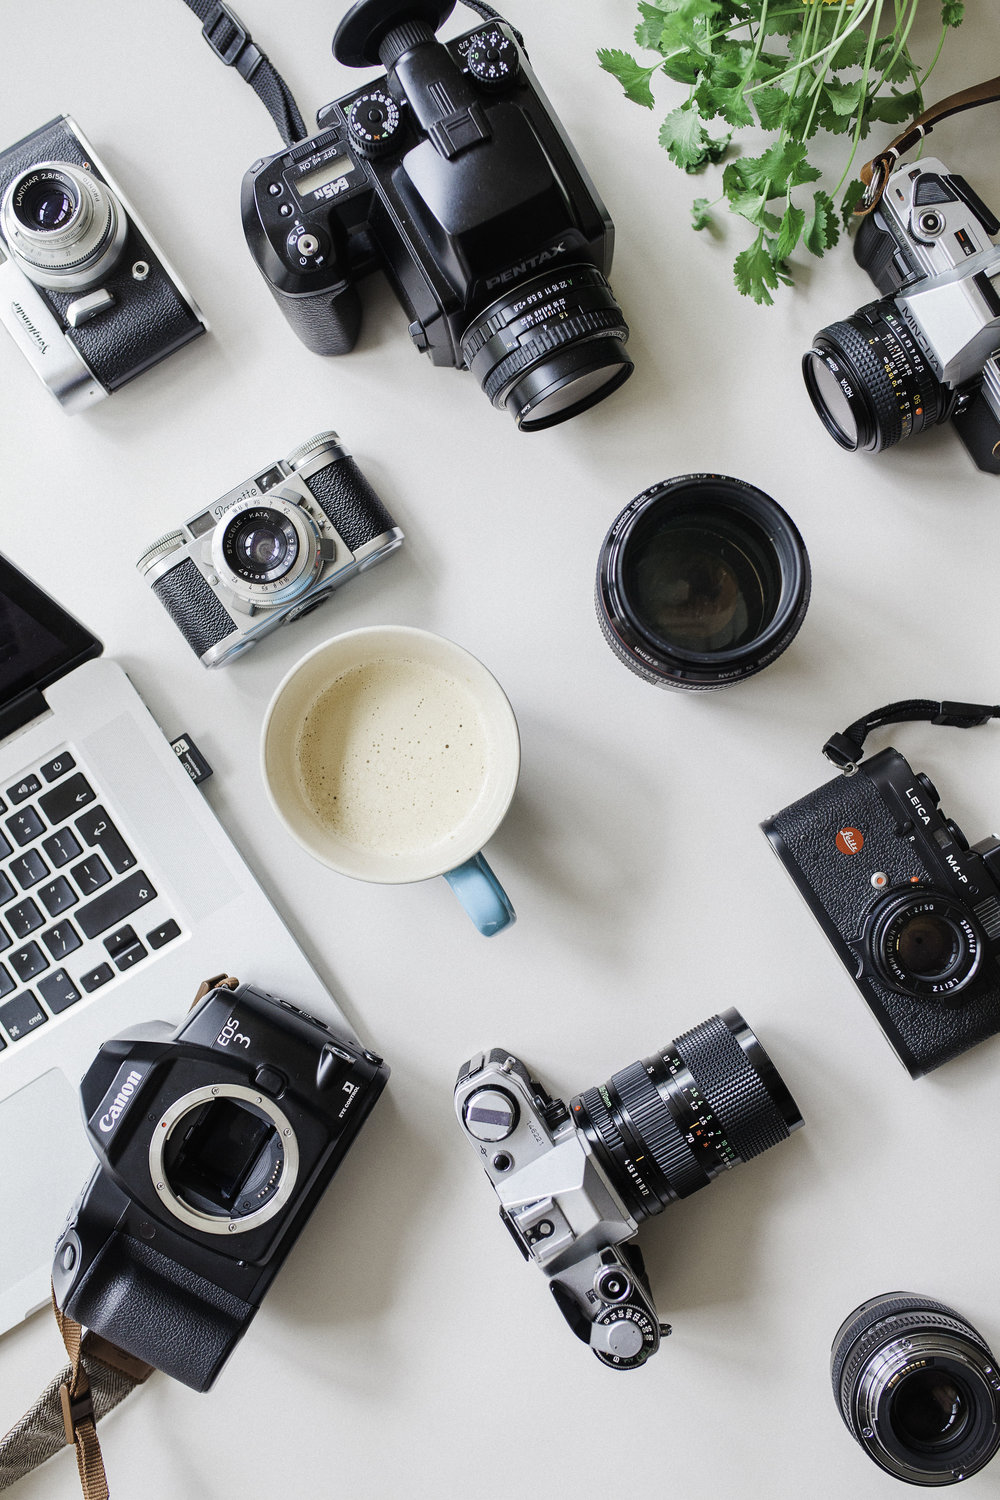 - Homework: Photograph one still object and adjust the ISO, Aperture, and Shutter Speed individually. You will quickly learn how each component depends on each other to make a correct exposure.